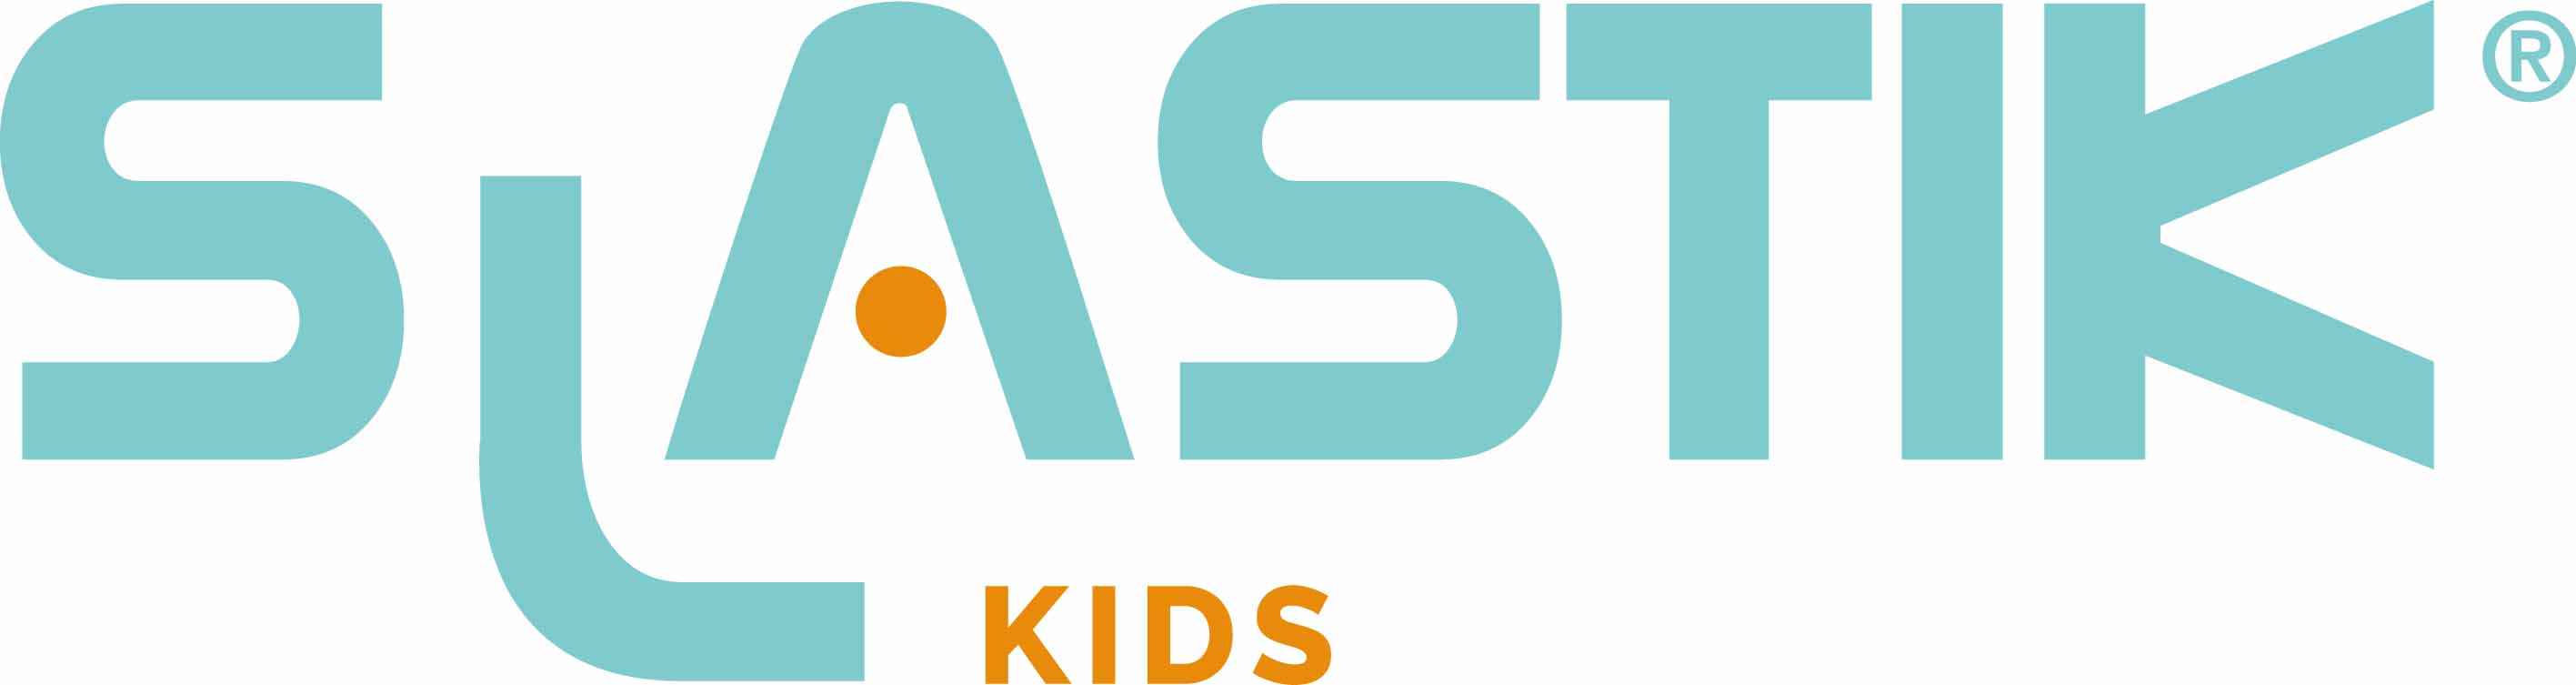 SLASTIK_KIDS_TURQUESA_WEB